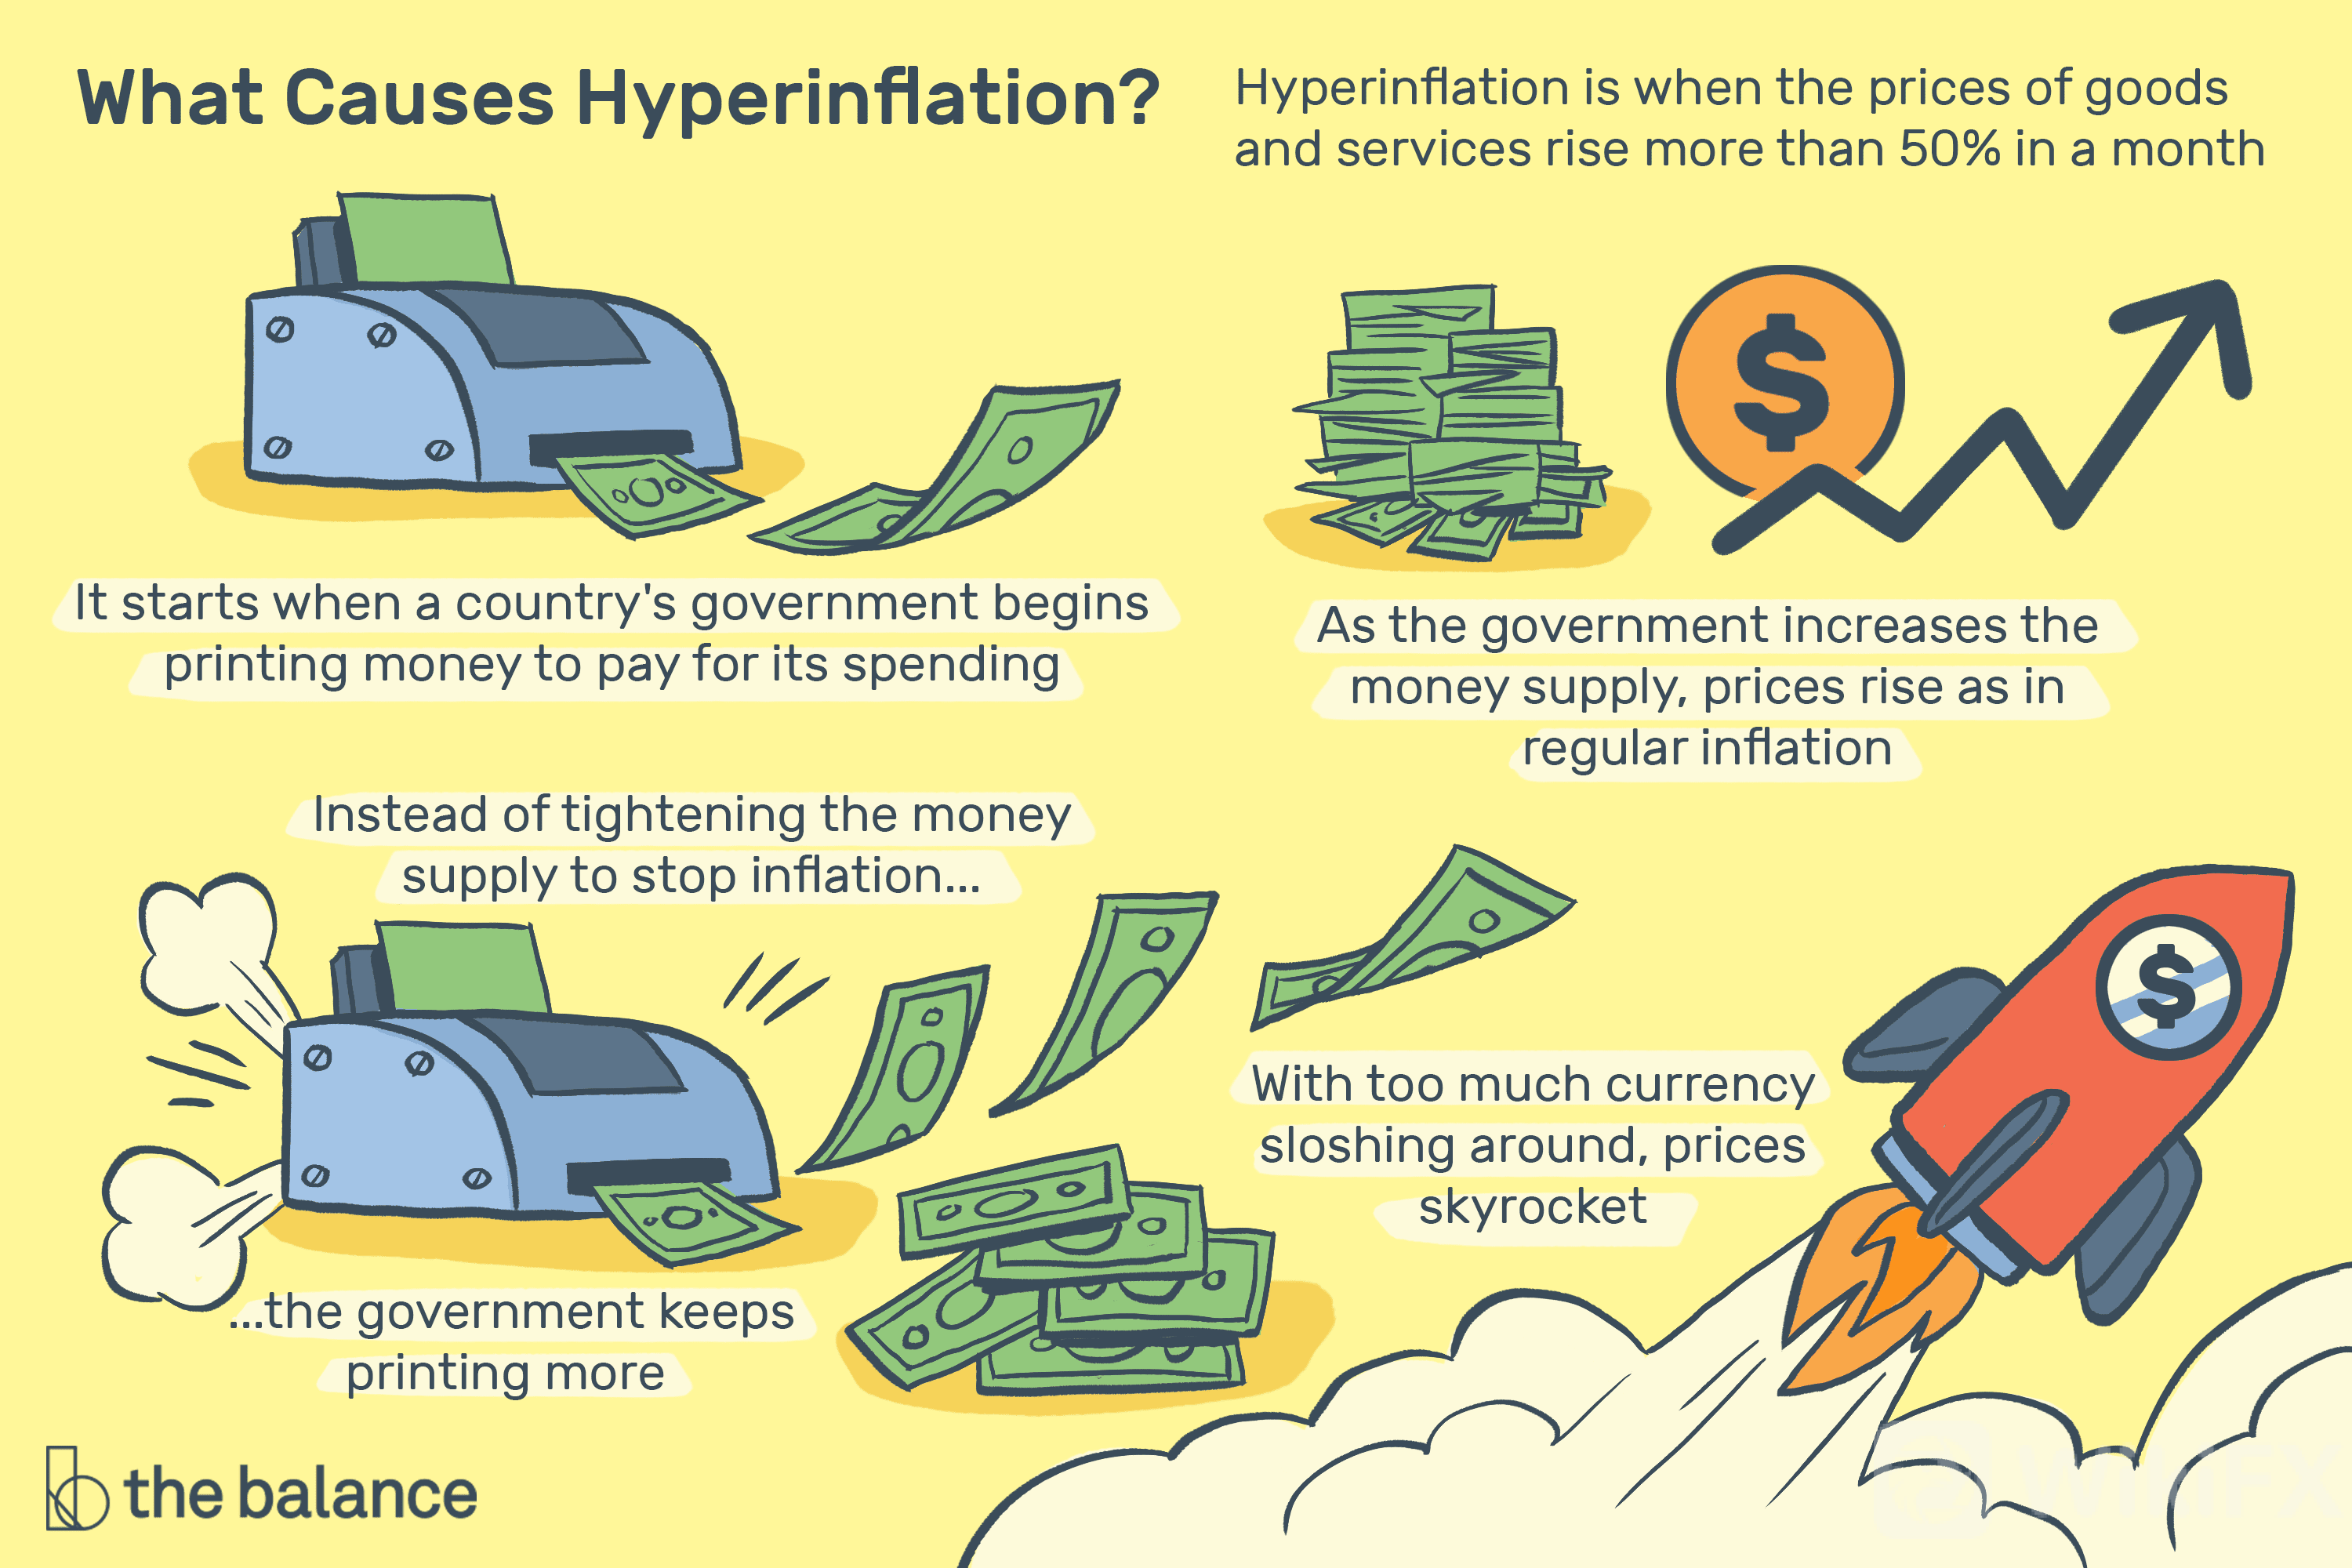 what-is-hyperinflation-definition-causes-and-examples-3306097-Final-58ea47ee1dd94b16b061214dcc8dae77.png